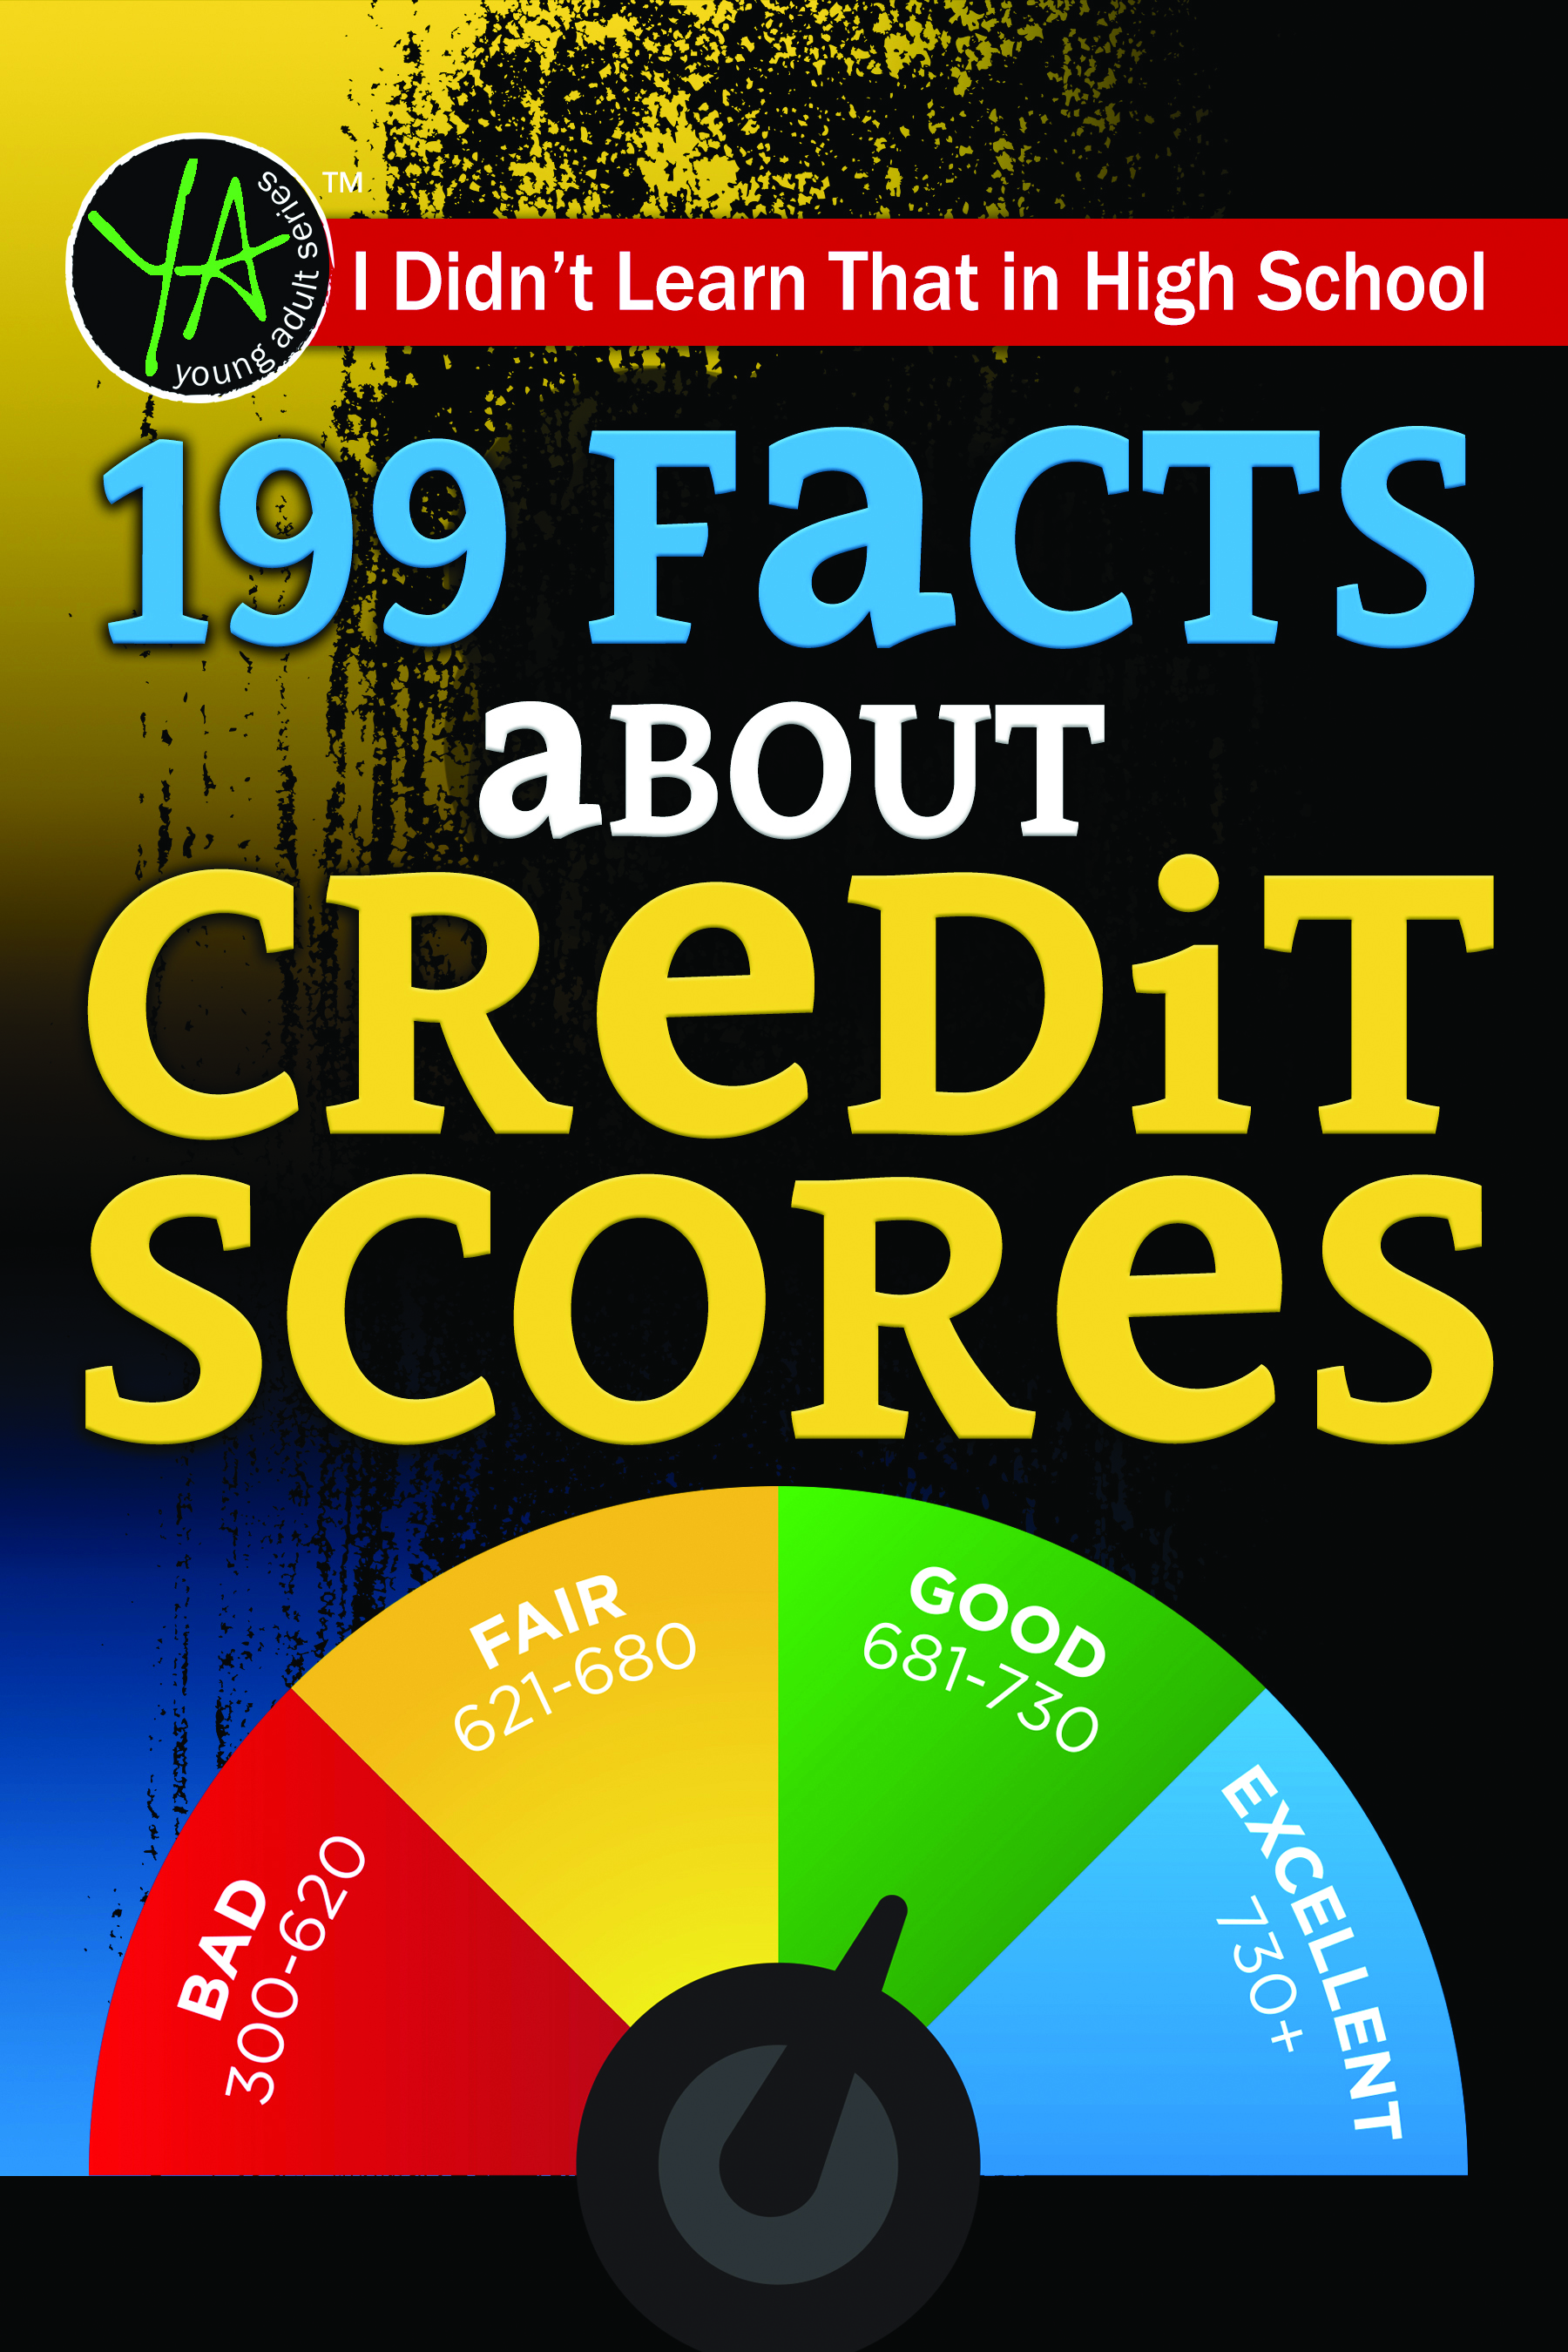 I Didn't Learn That in High School 199 Facts About Credit Scores